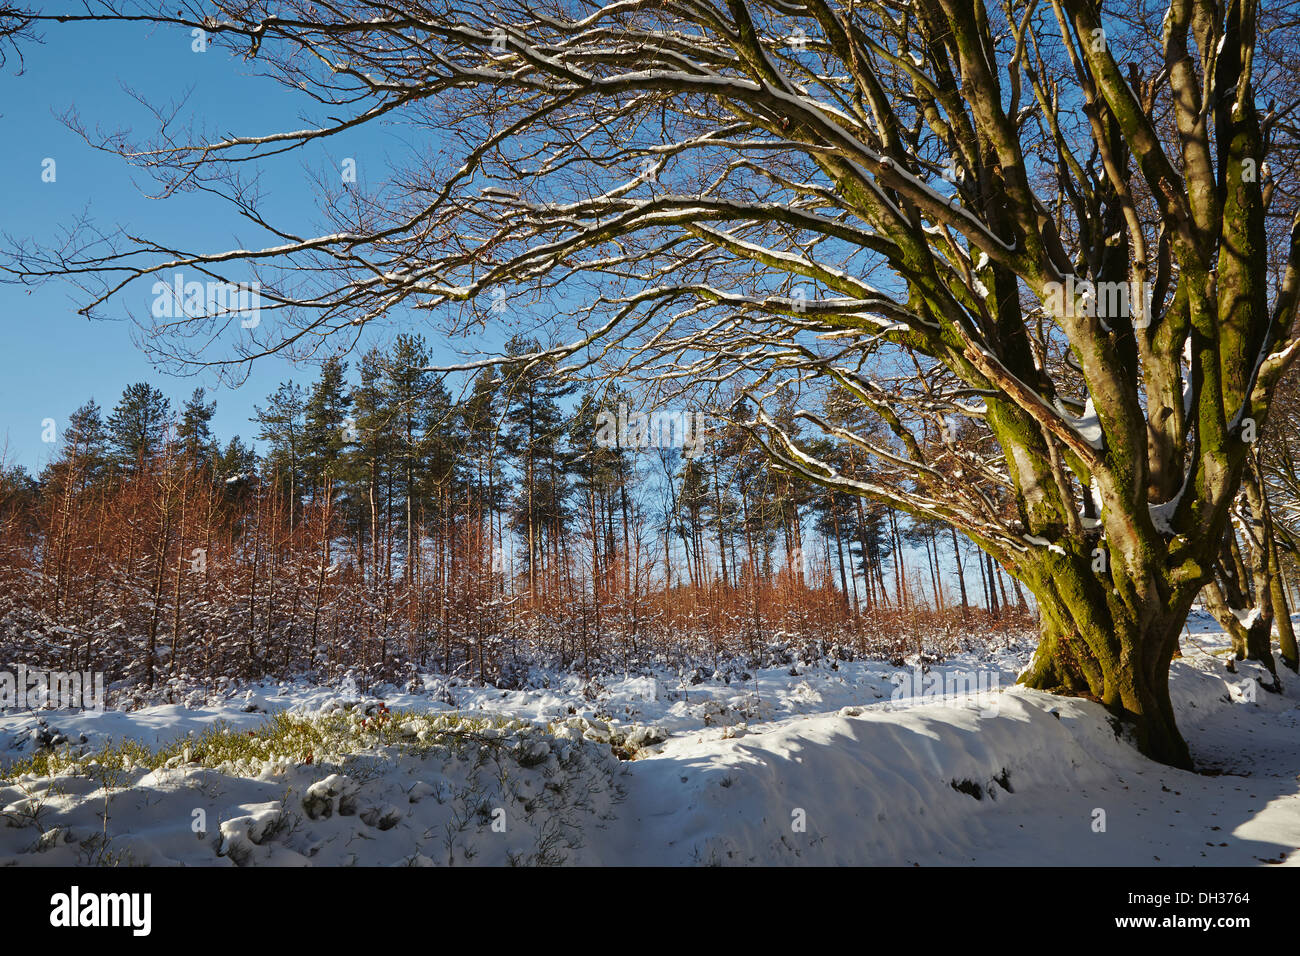 A beech tree and conifer forest in deep snow, in the Haldon Hills near Mamhead, near Exeter, Devon, Great Britain. - Stock Image